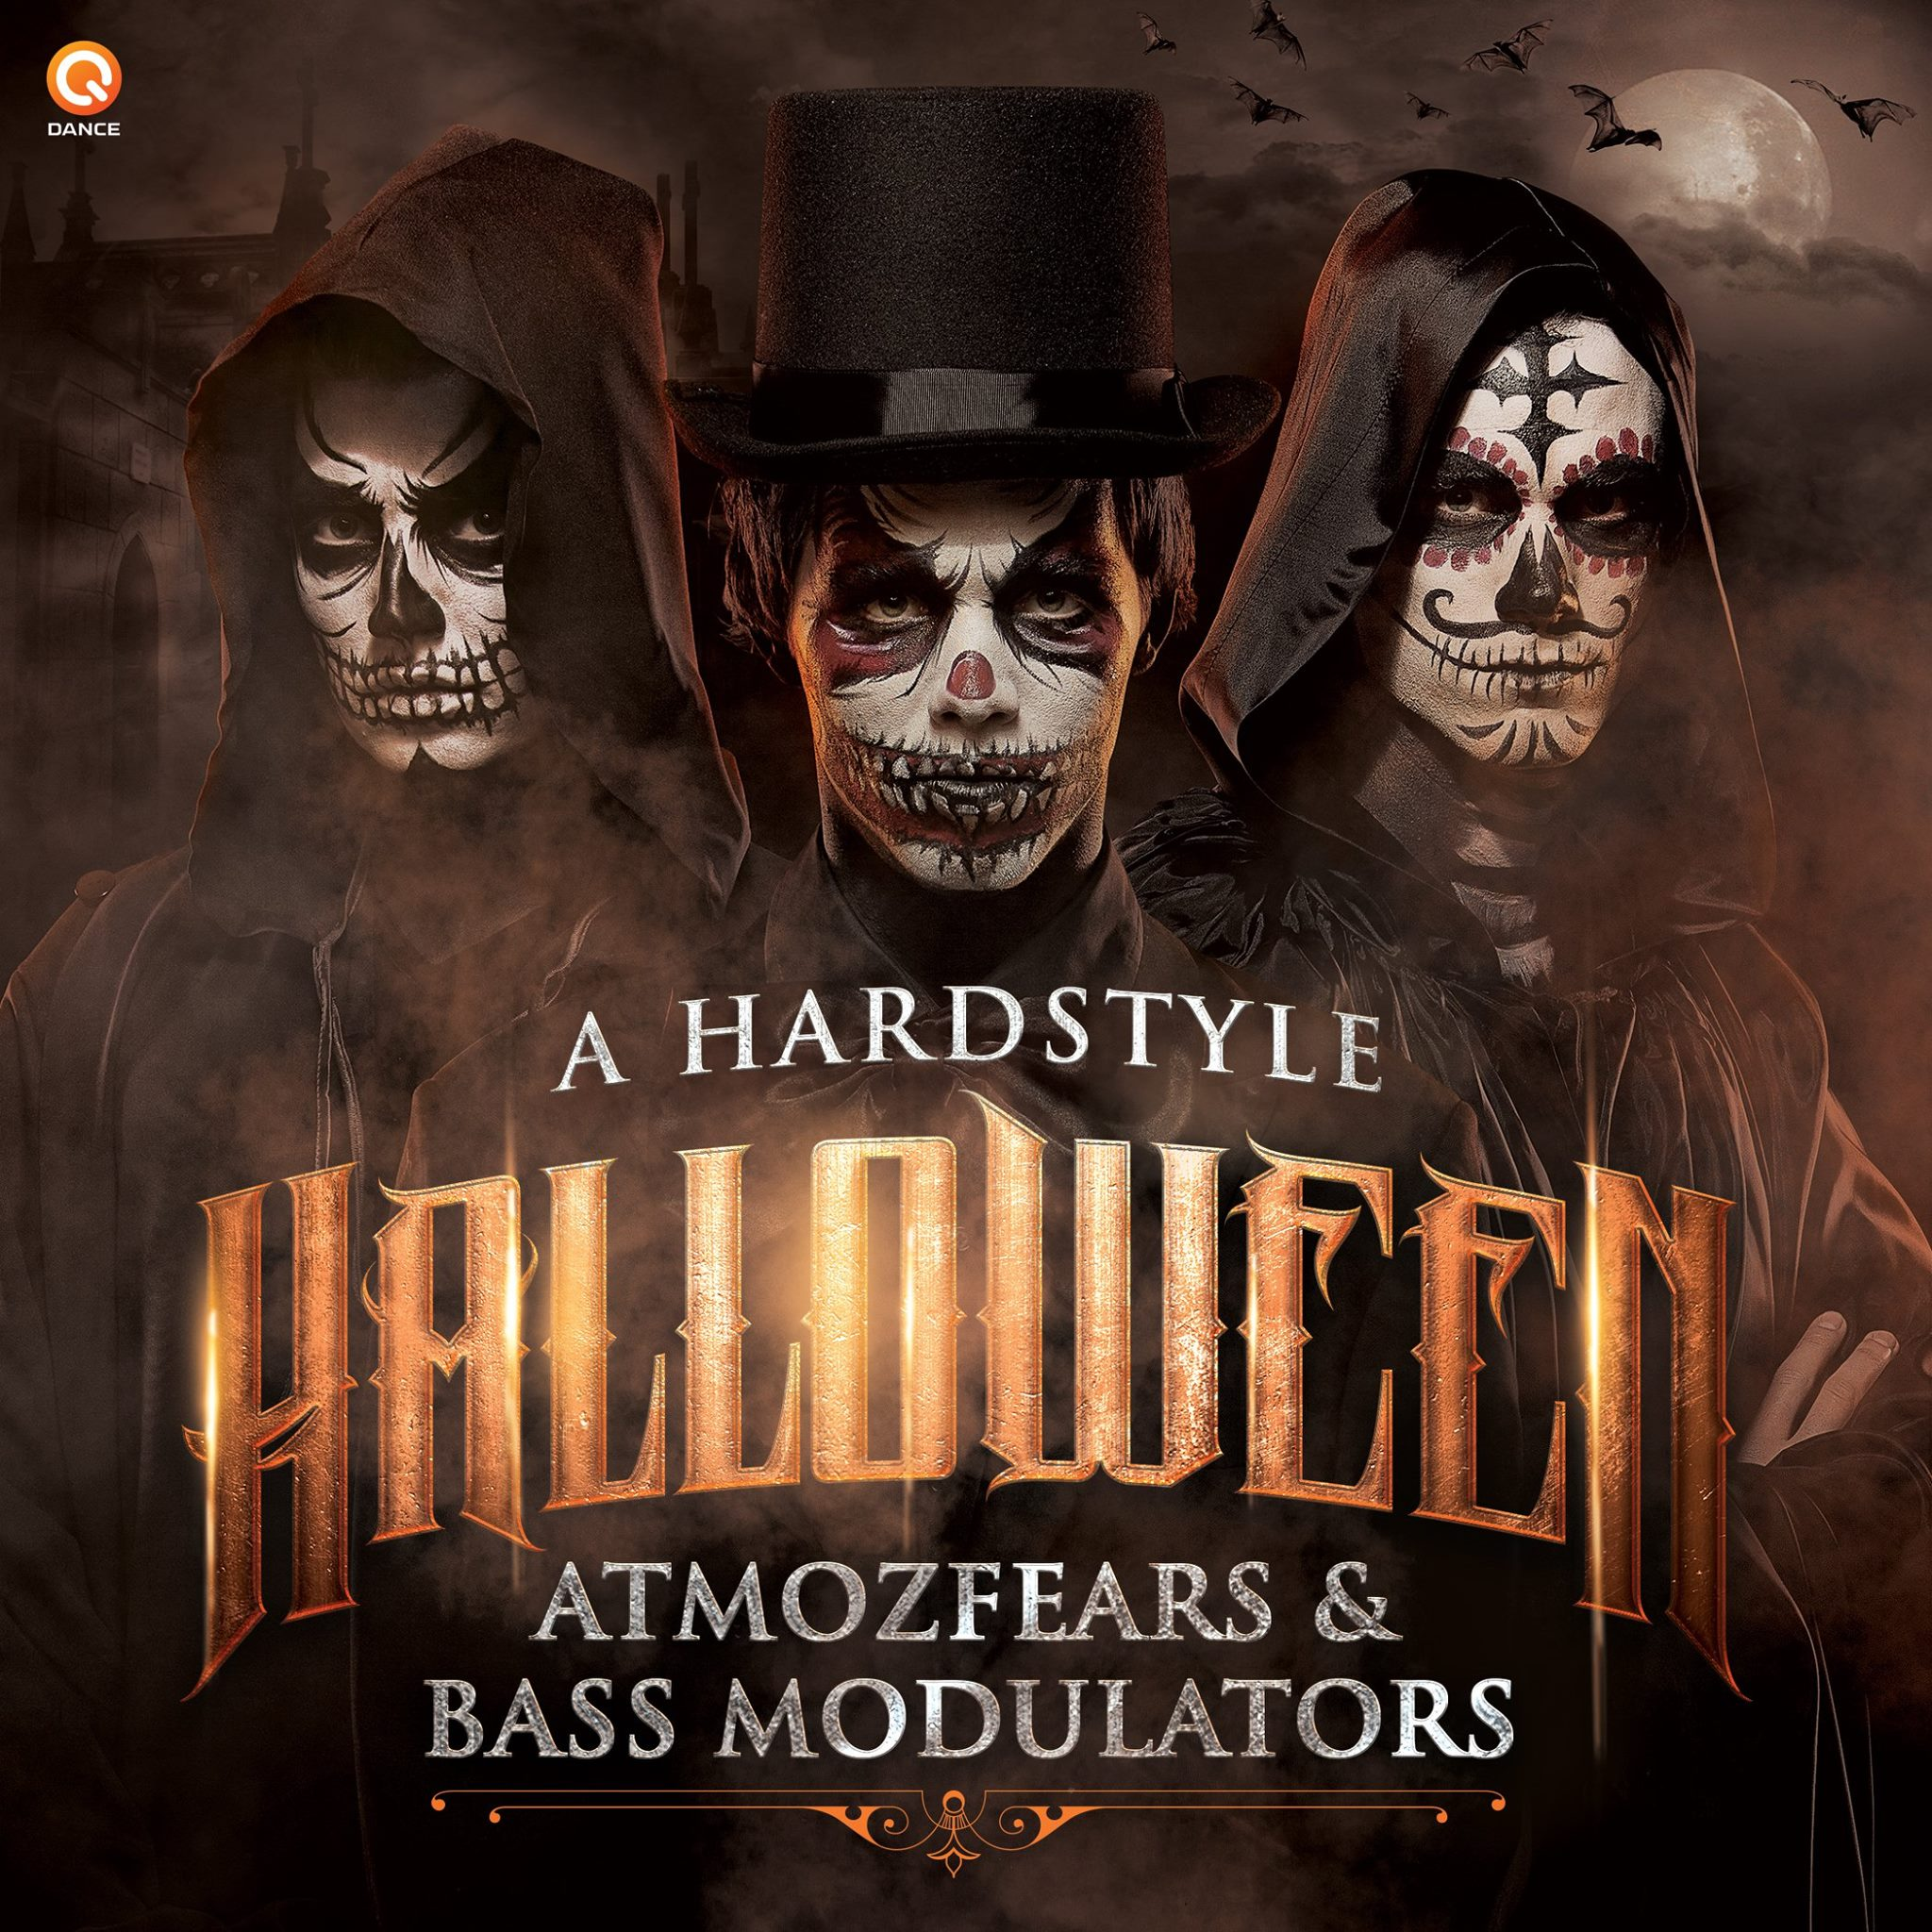 cover art for the atmozfears & bass modulators - a hardstyle